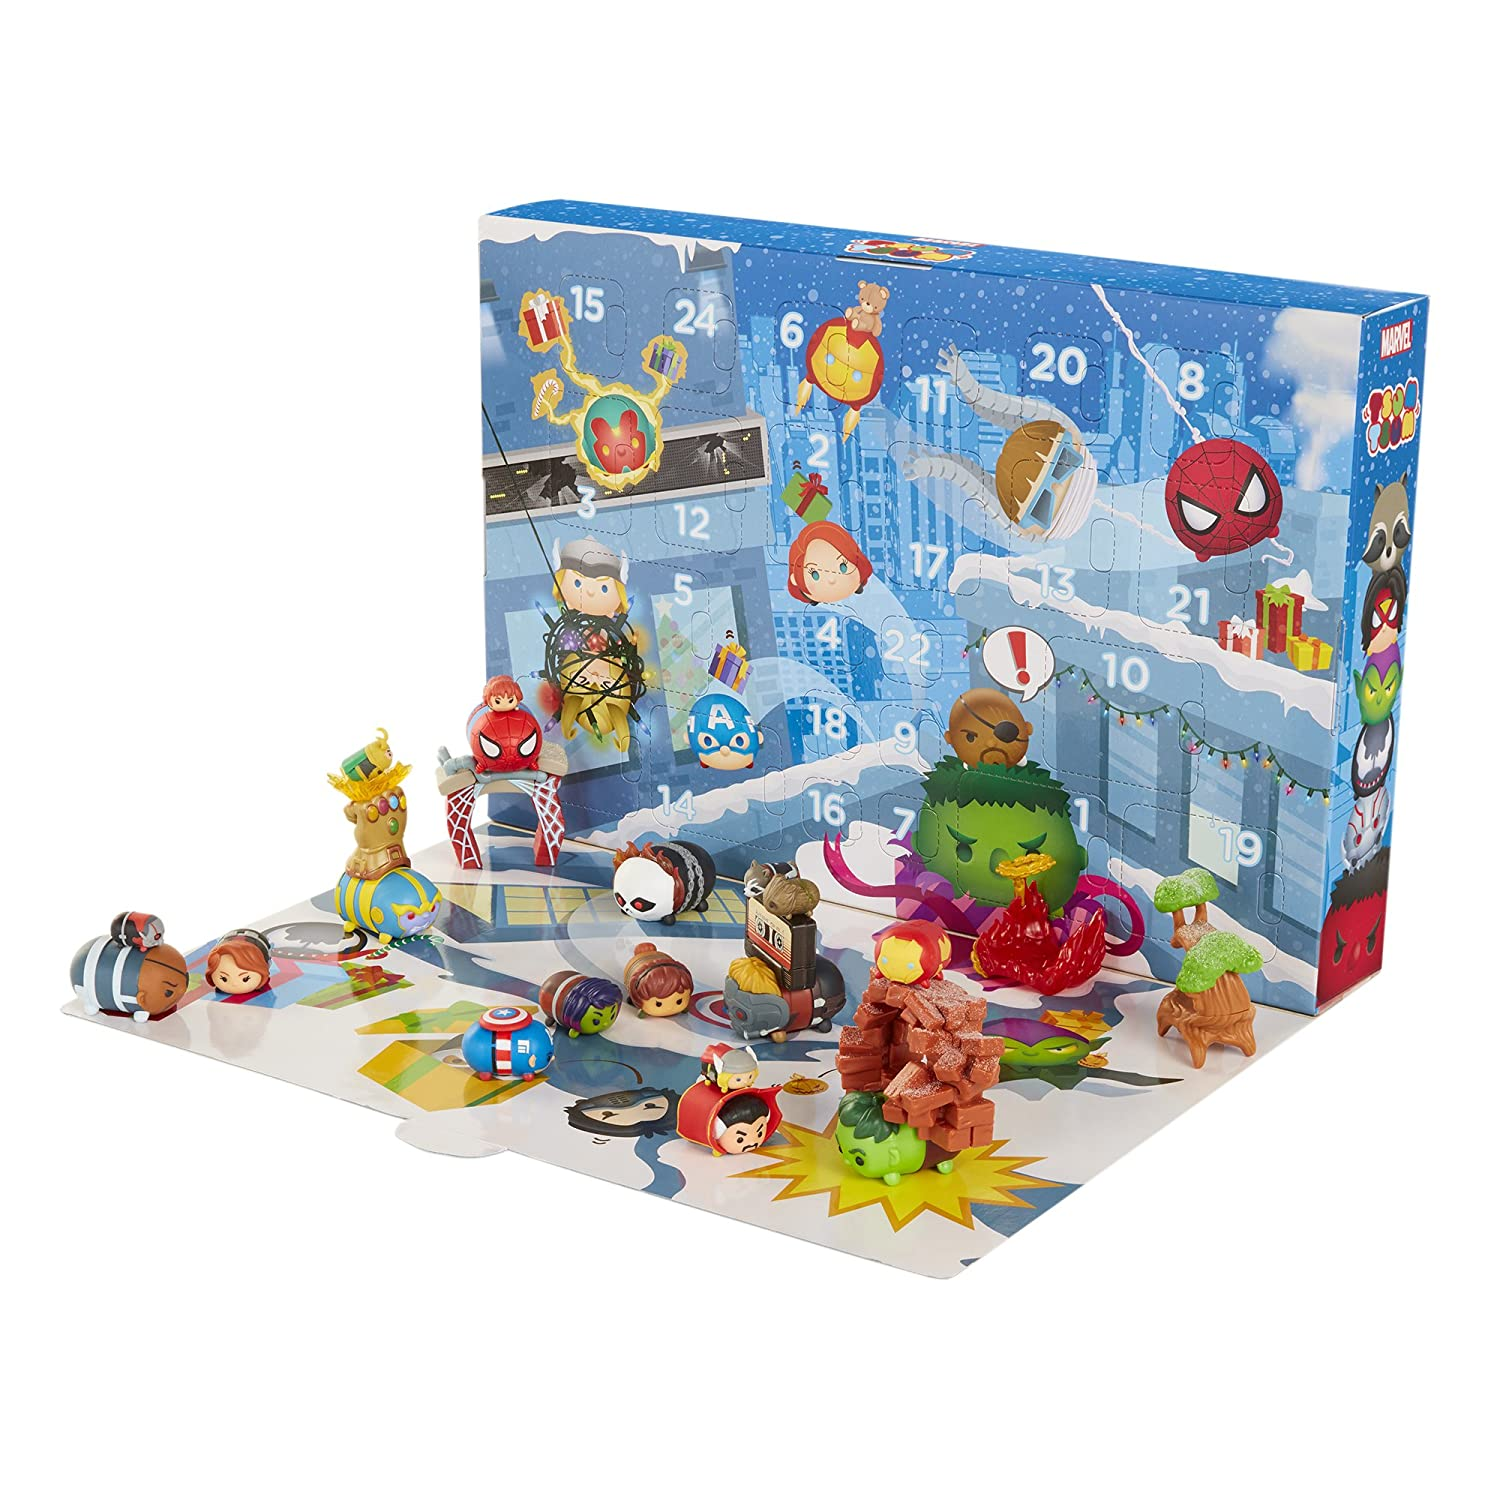 Tsum Tsum Marvel Countdown to Christmas Advent Calendar Playset 06119